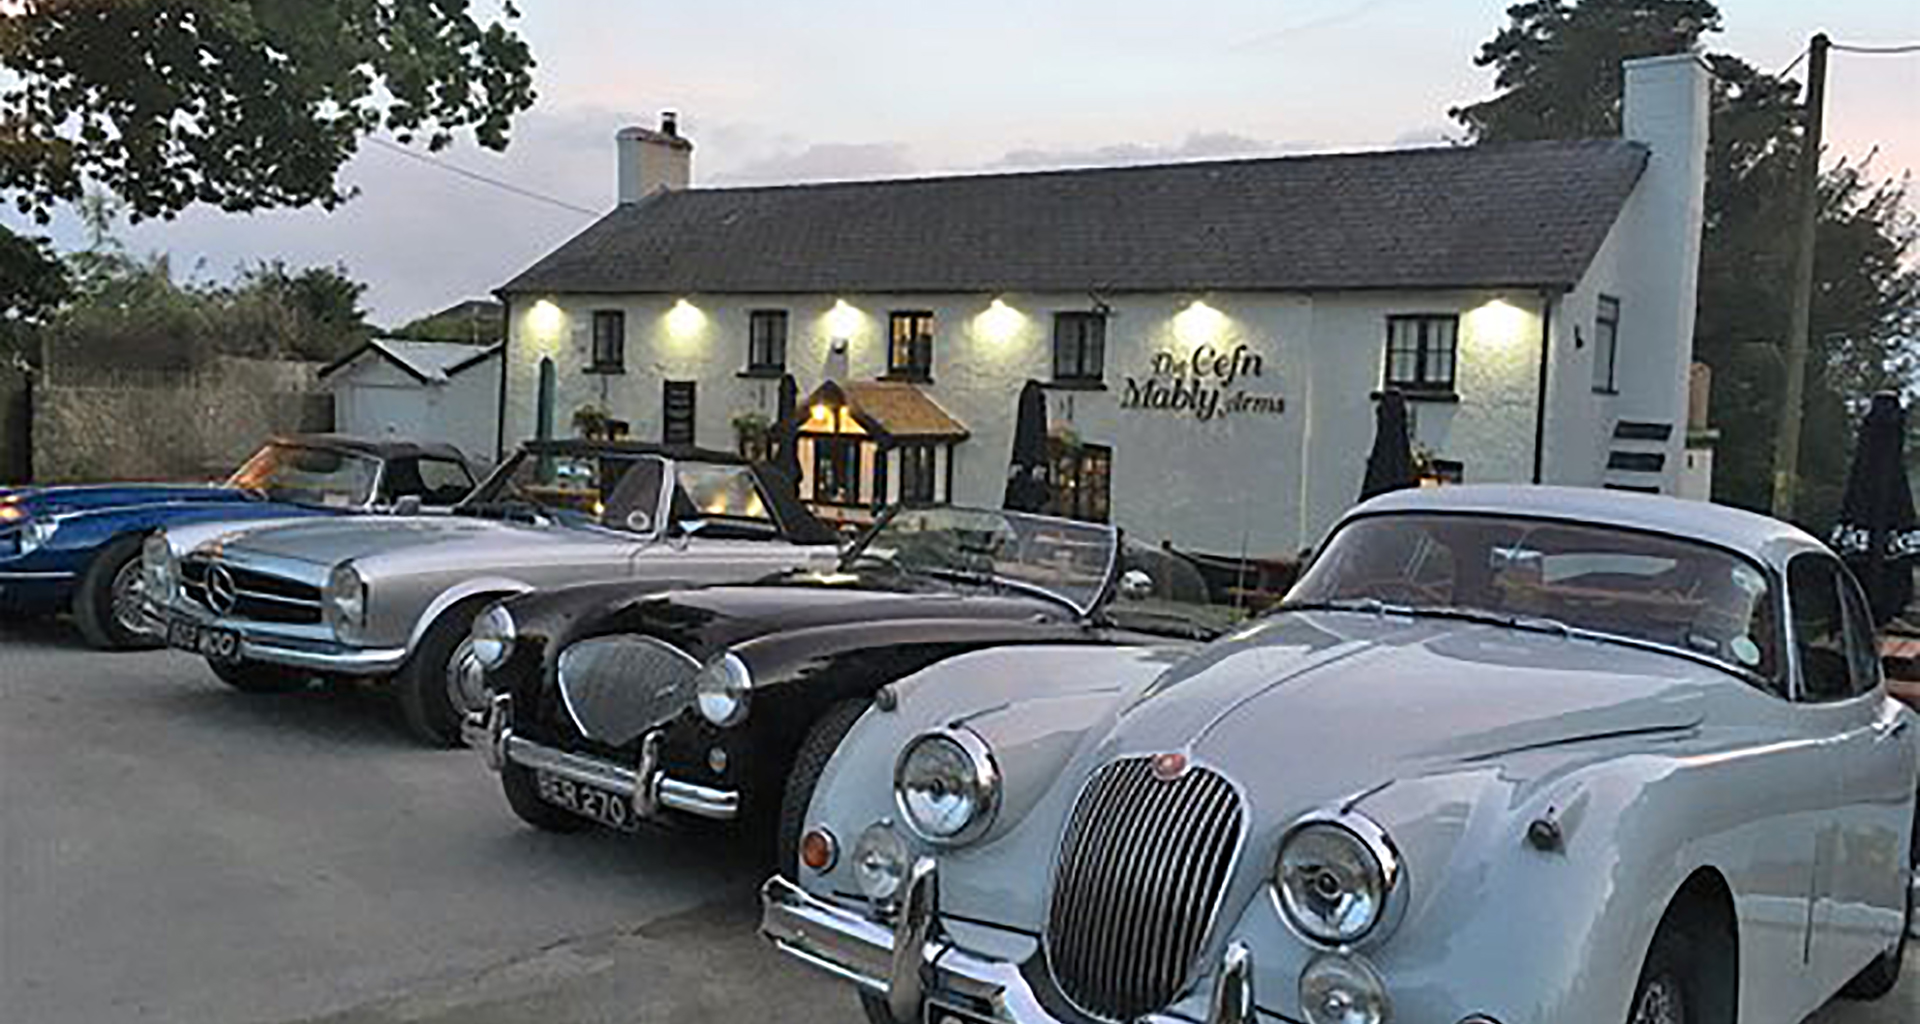 Cefn Mably Arms Classic Car Evening